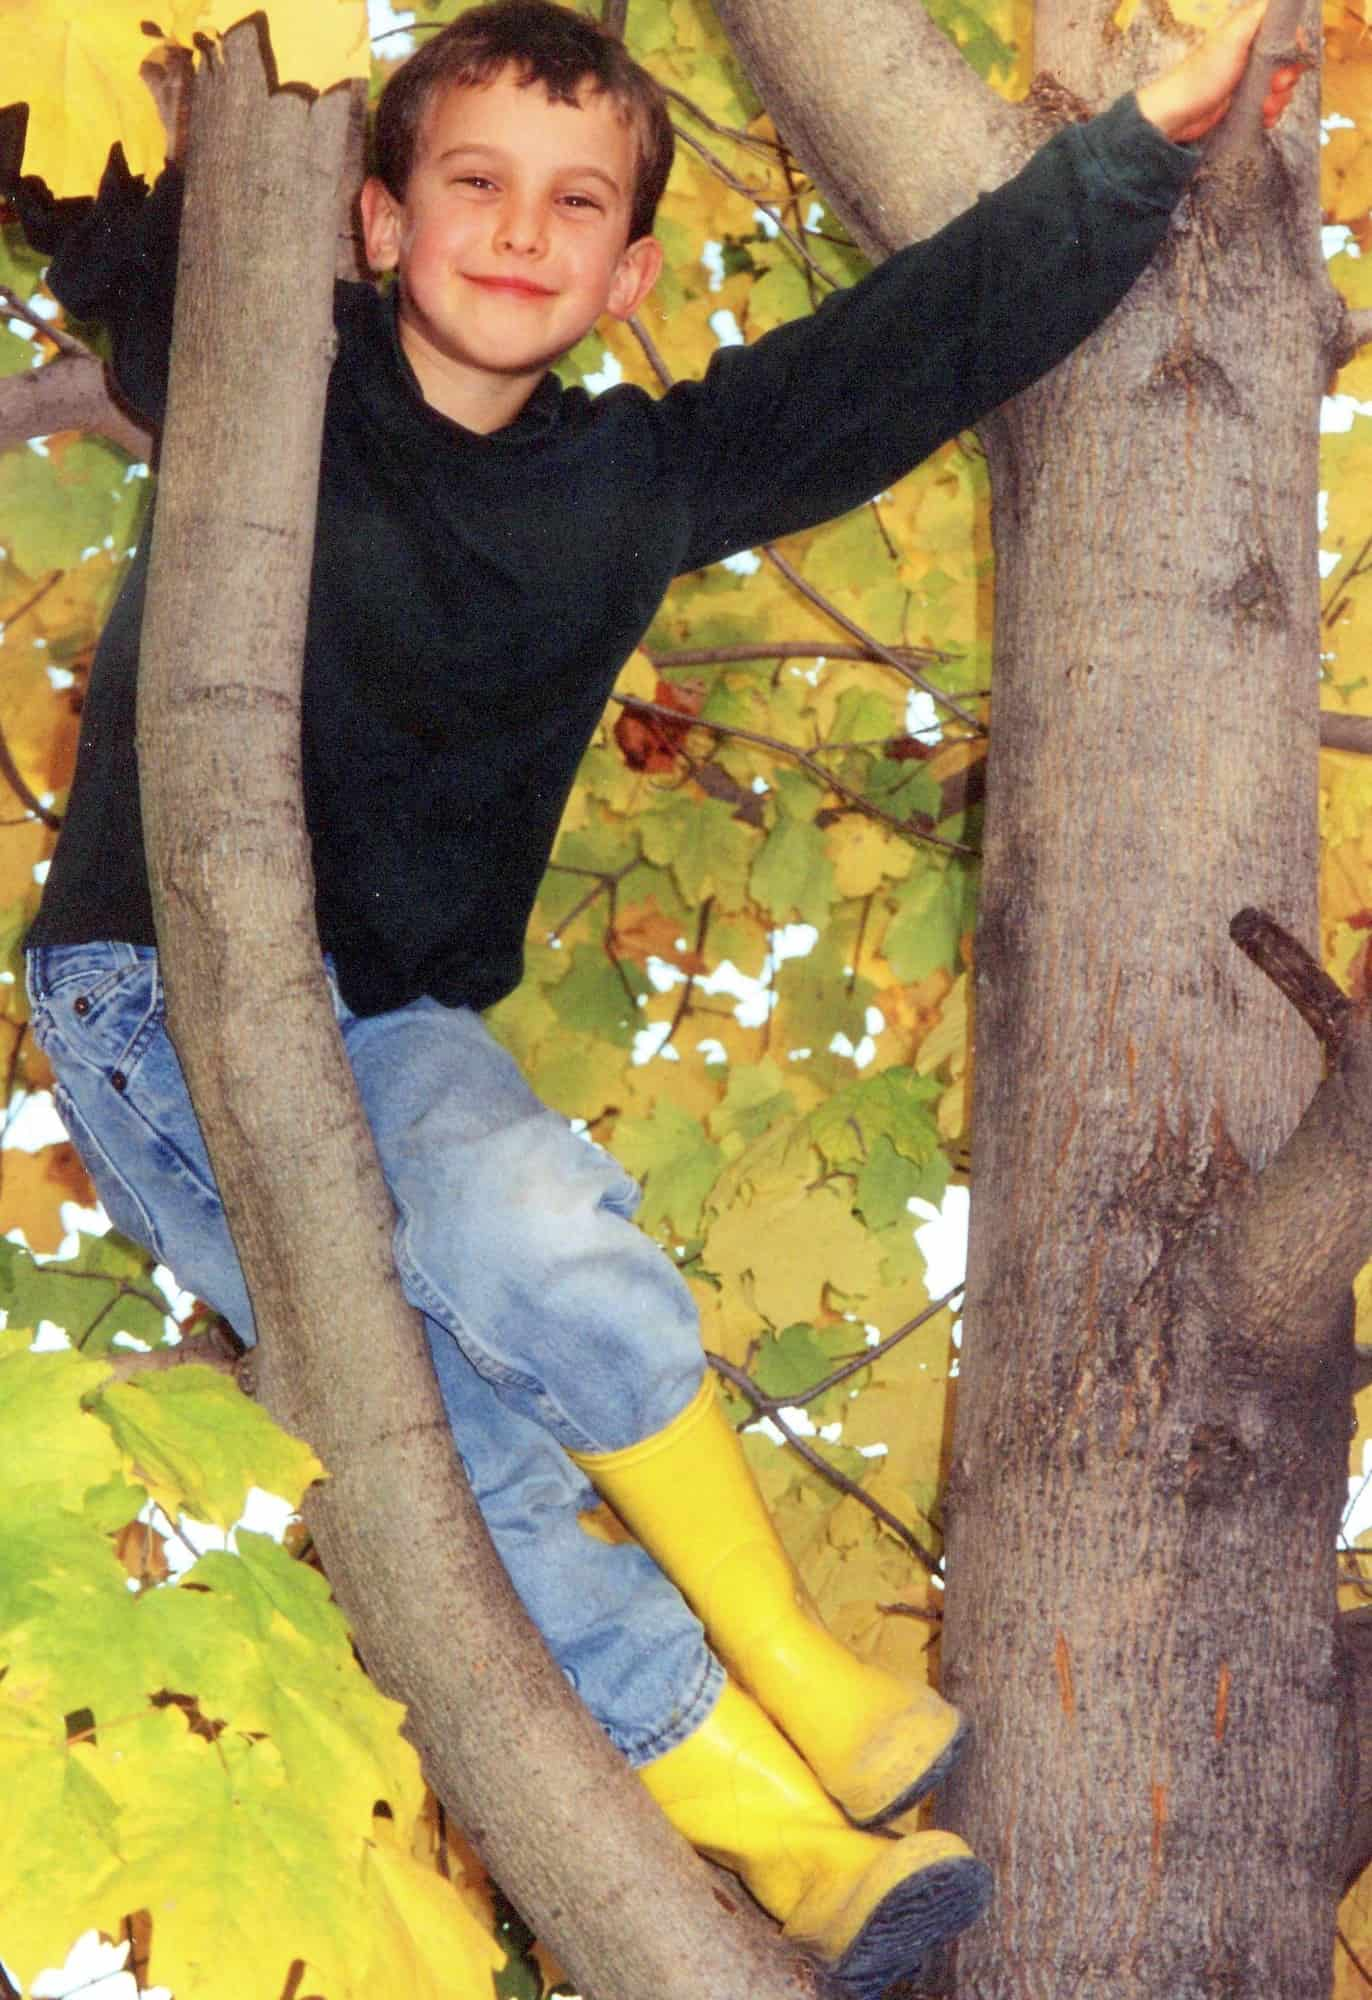 Moldable Boys: Raise Them to be Competent, Hard-Working & Masculine. My son climbing high in a tree